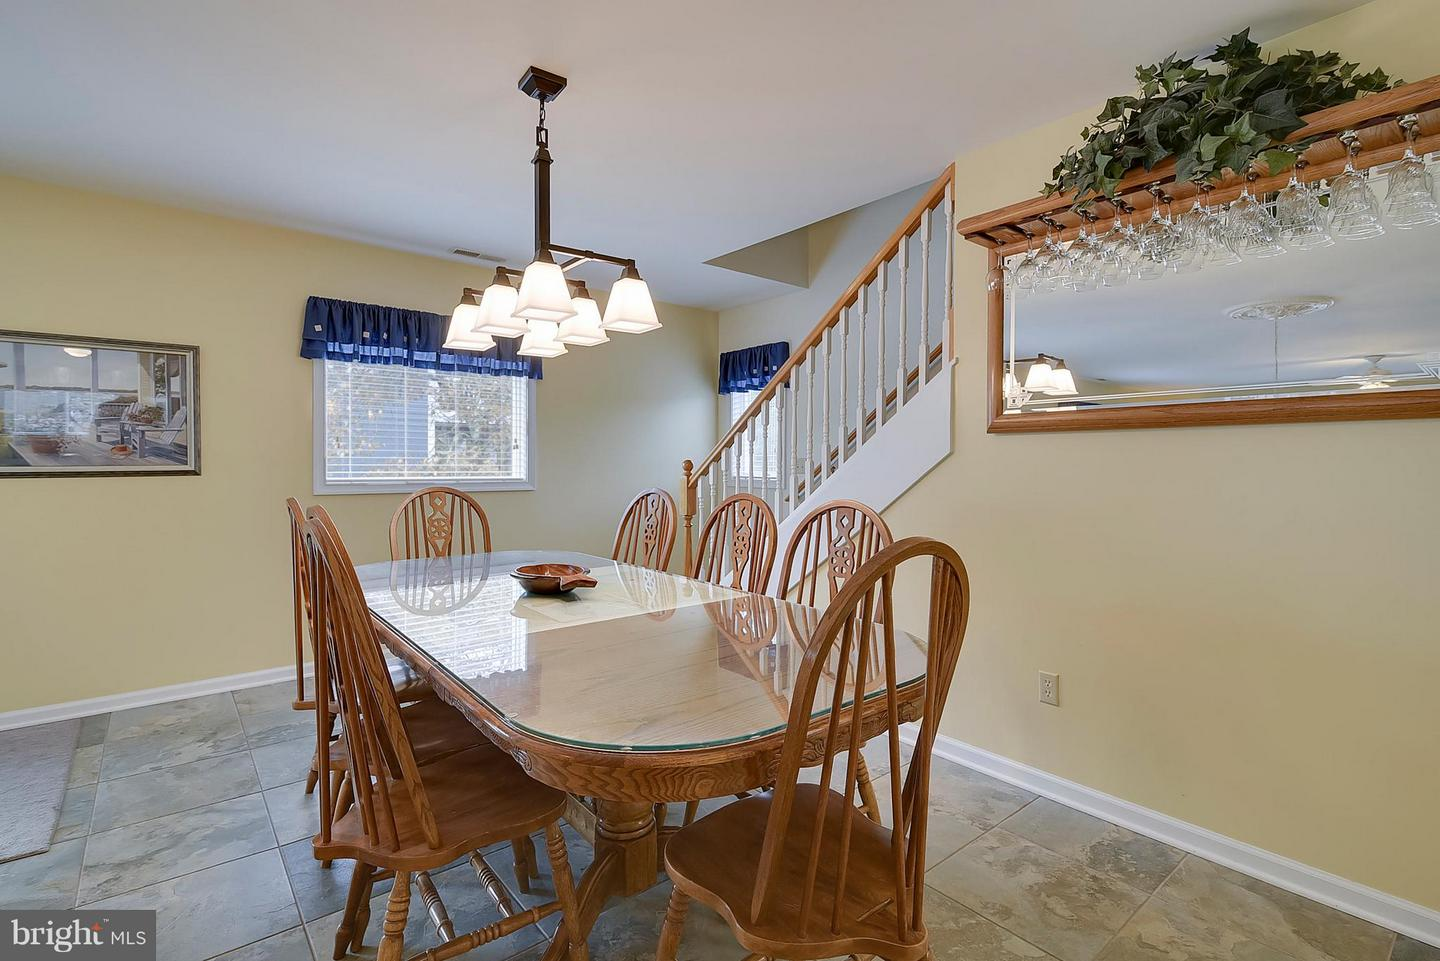 1002344128-300986985551-2018-11-07-14-16-58 39634 Seatrout Cir | North Bethany, DE Real Estate For Sale | MLS# 1002344128  - 1st Choice Properties